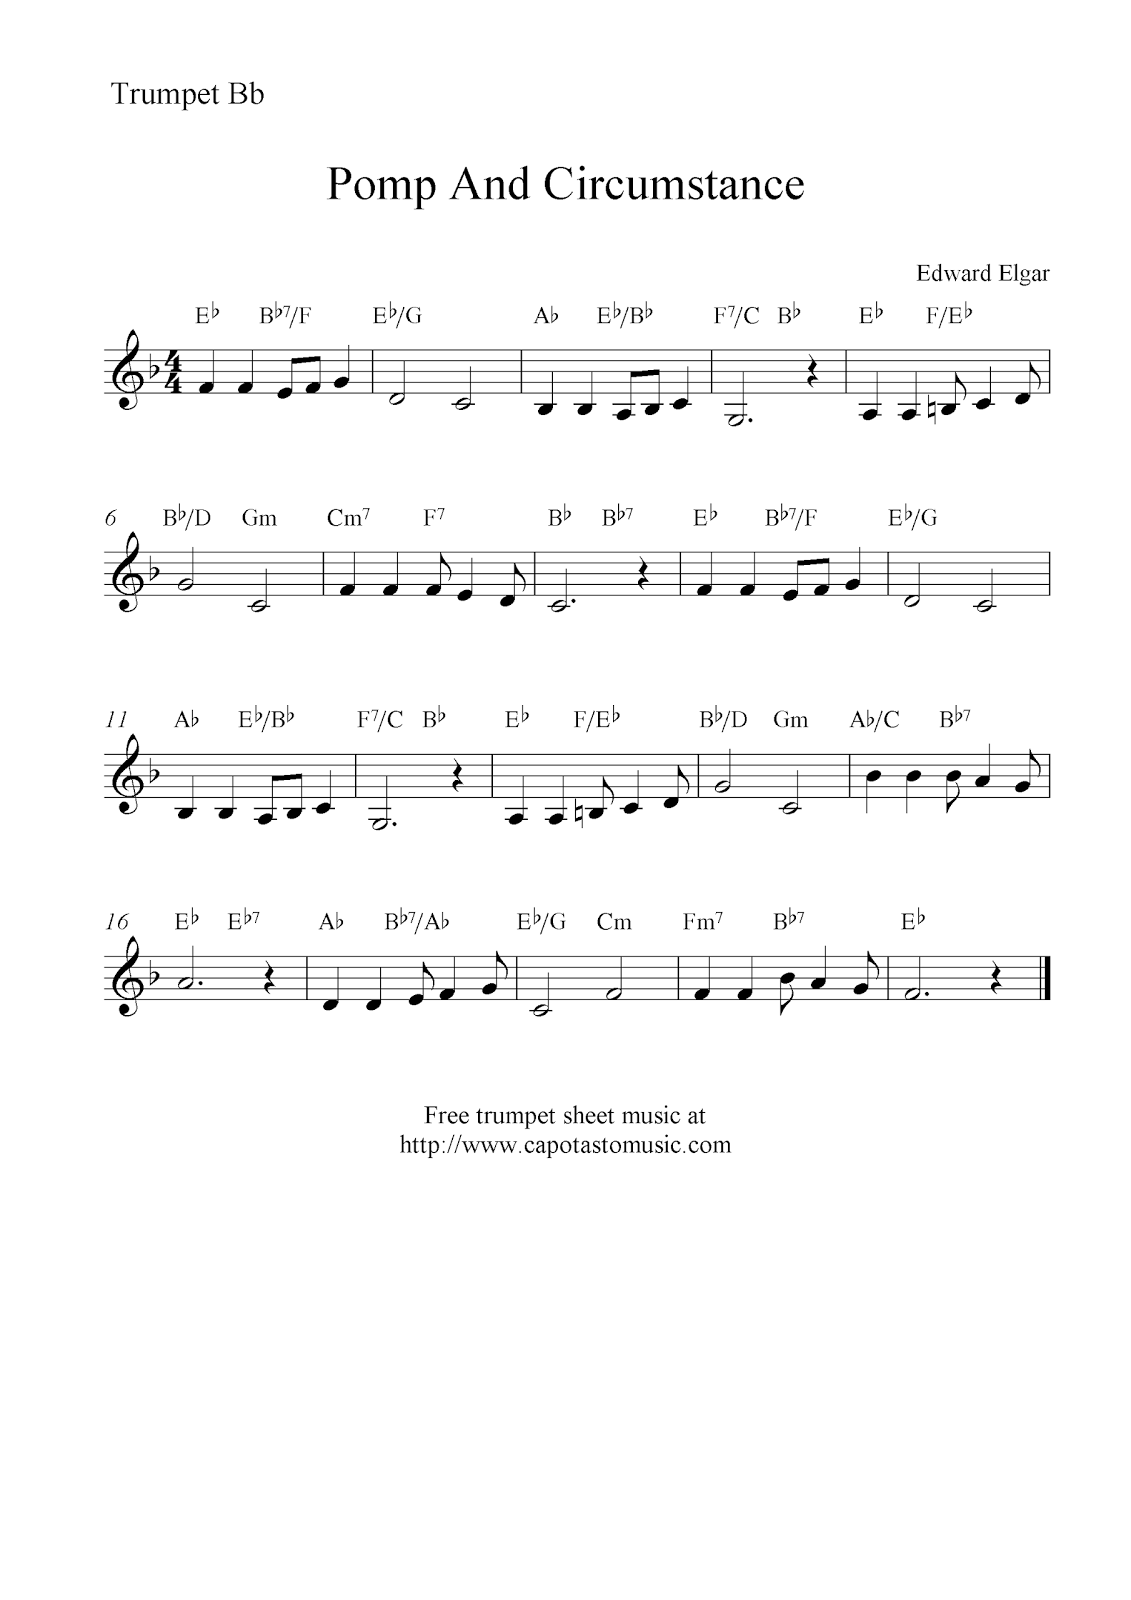 Land of hope and glory free trumpet sheet music notes